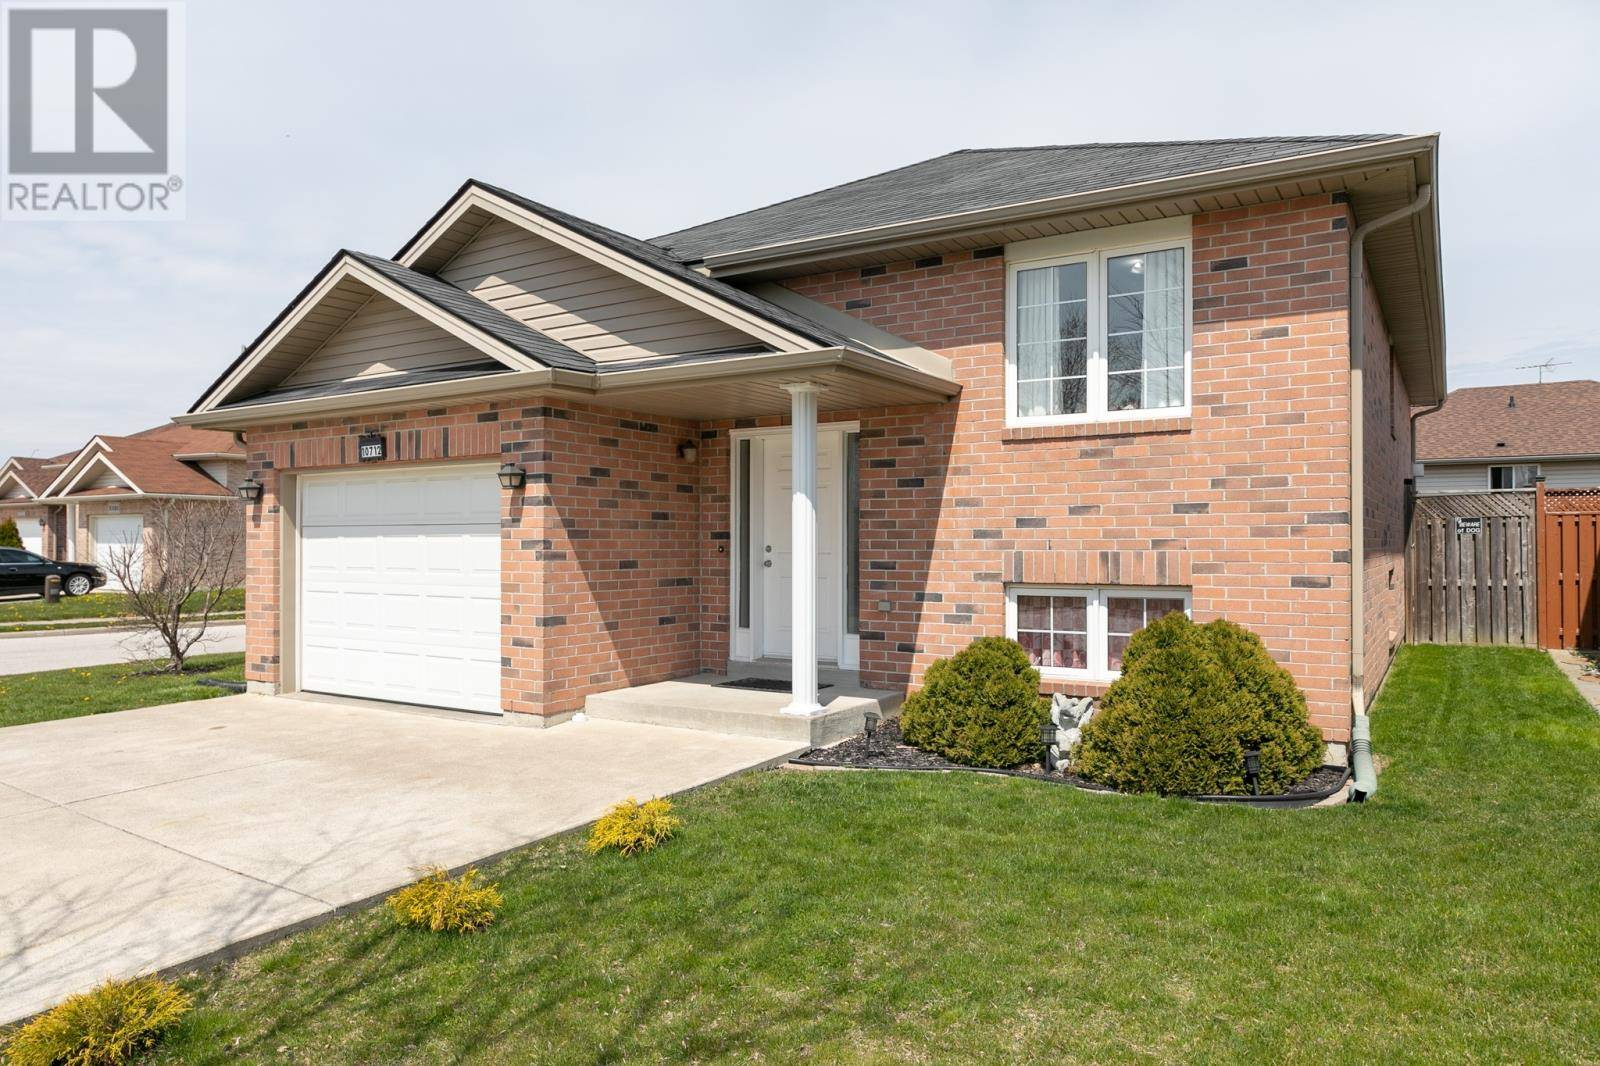 House for sale at 10712 Springhollow Dr Windsor Ontario - MLS: 20004628